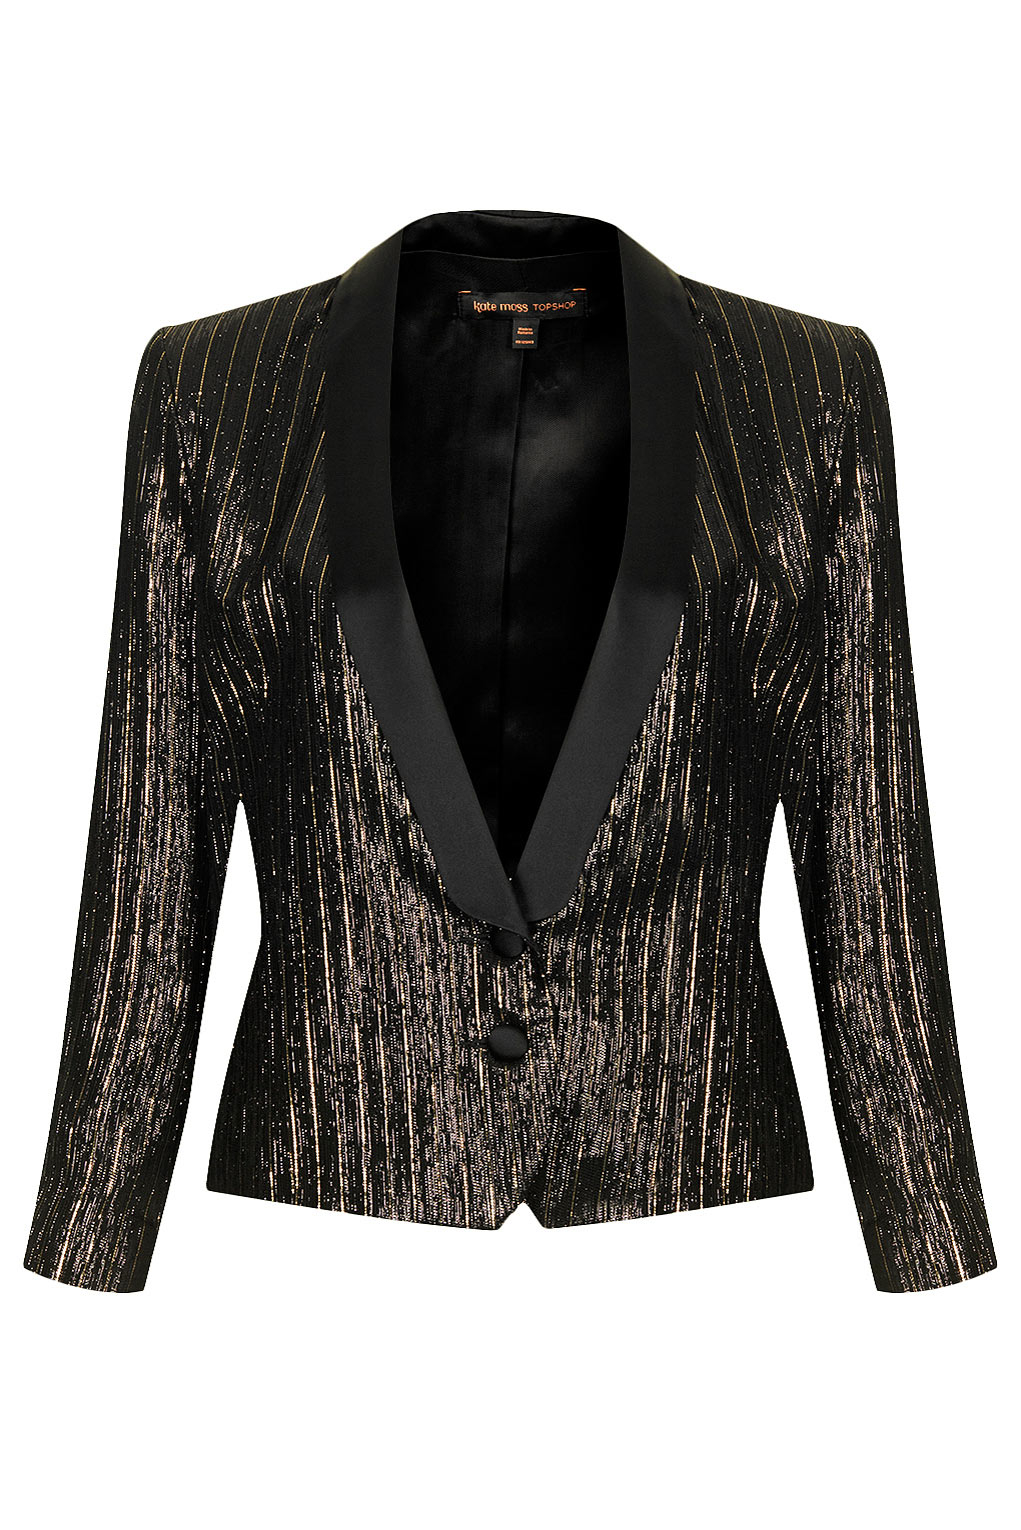 Lyst - TOPSHOP Womens Lamé Tuexdo Suit Jacket By Kate Moss For Gold ... 1a192ba5a4